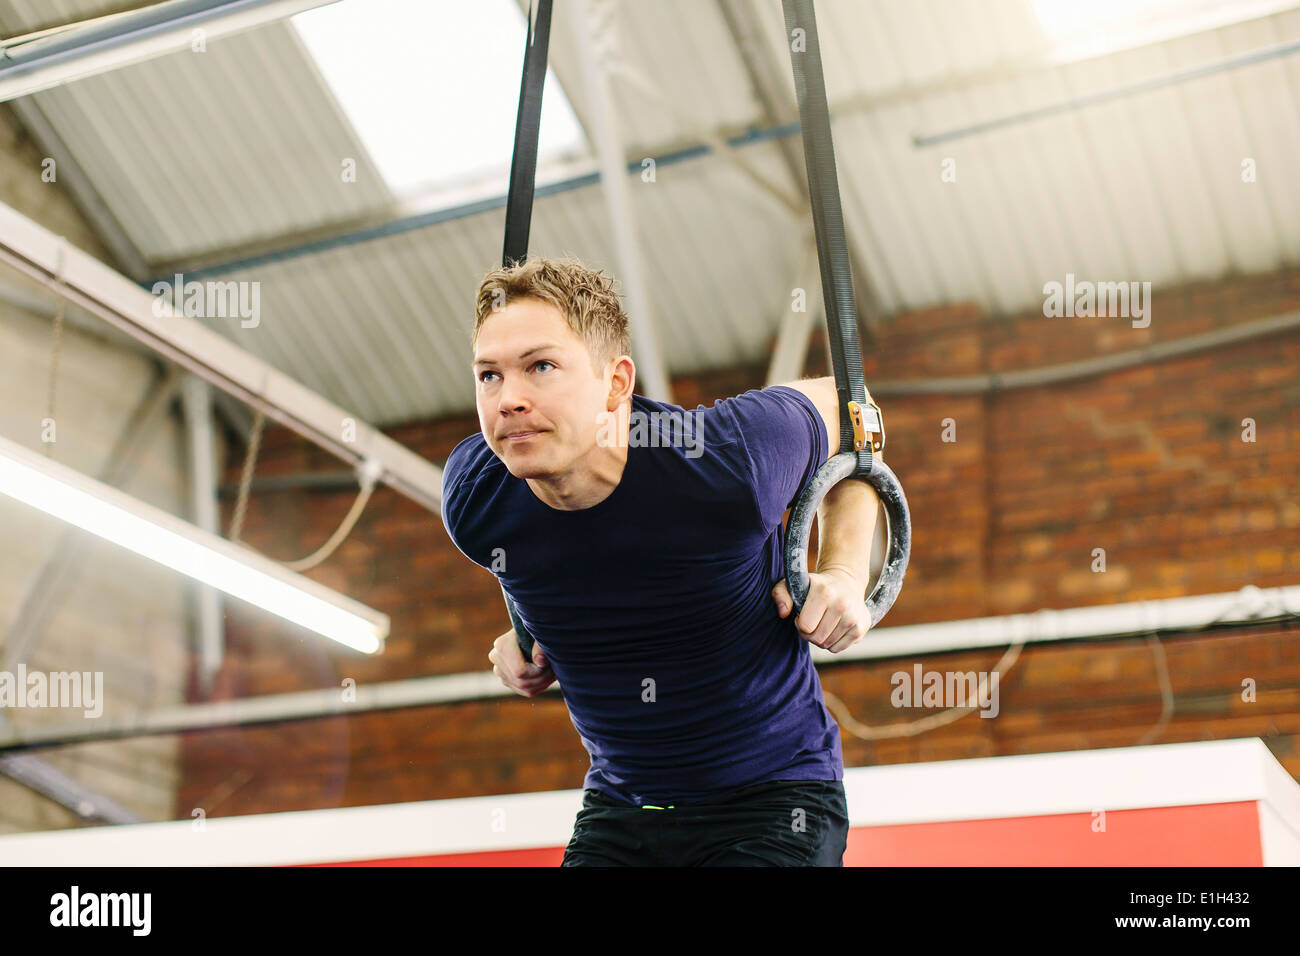 Bagues Homme tirant suspendue in gym Photo Stock